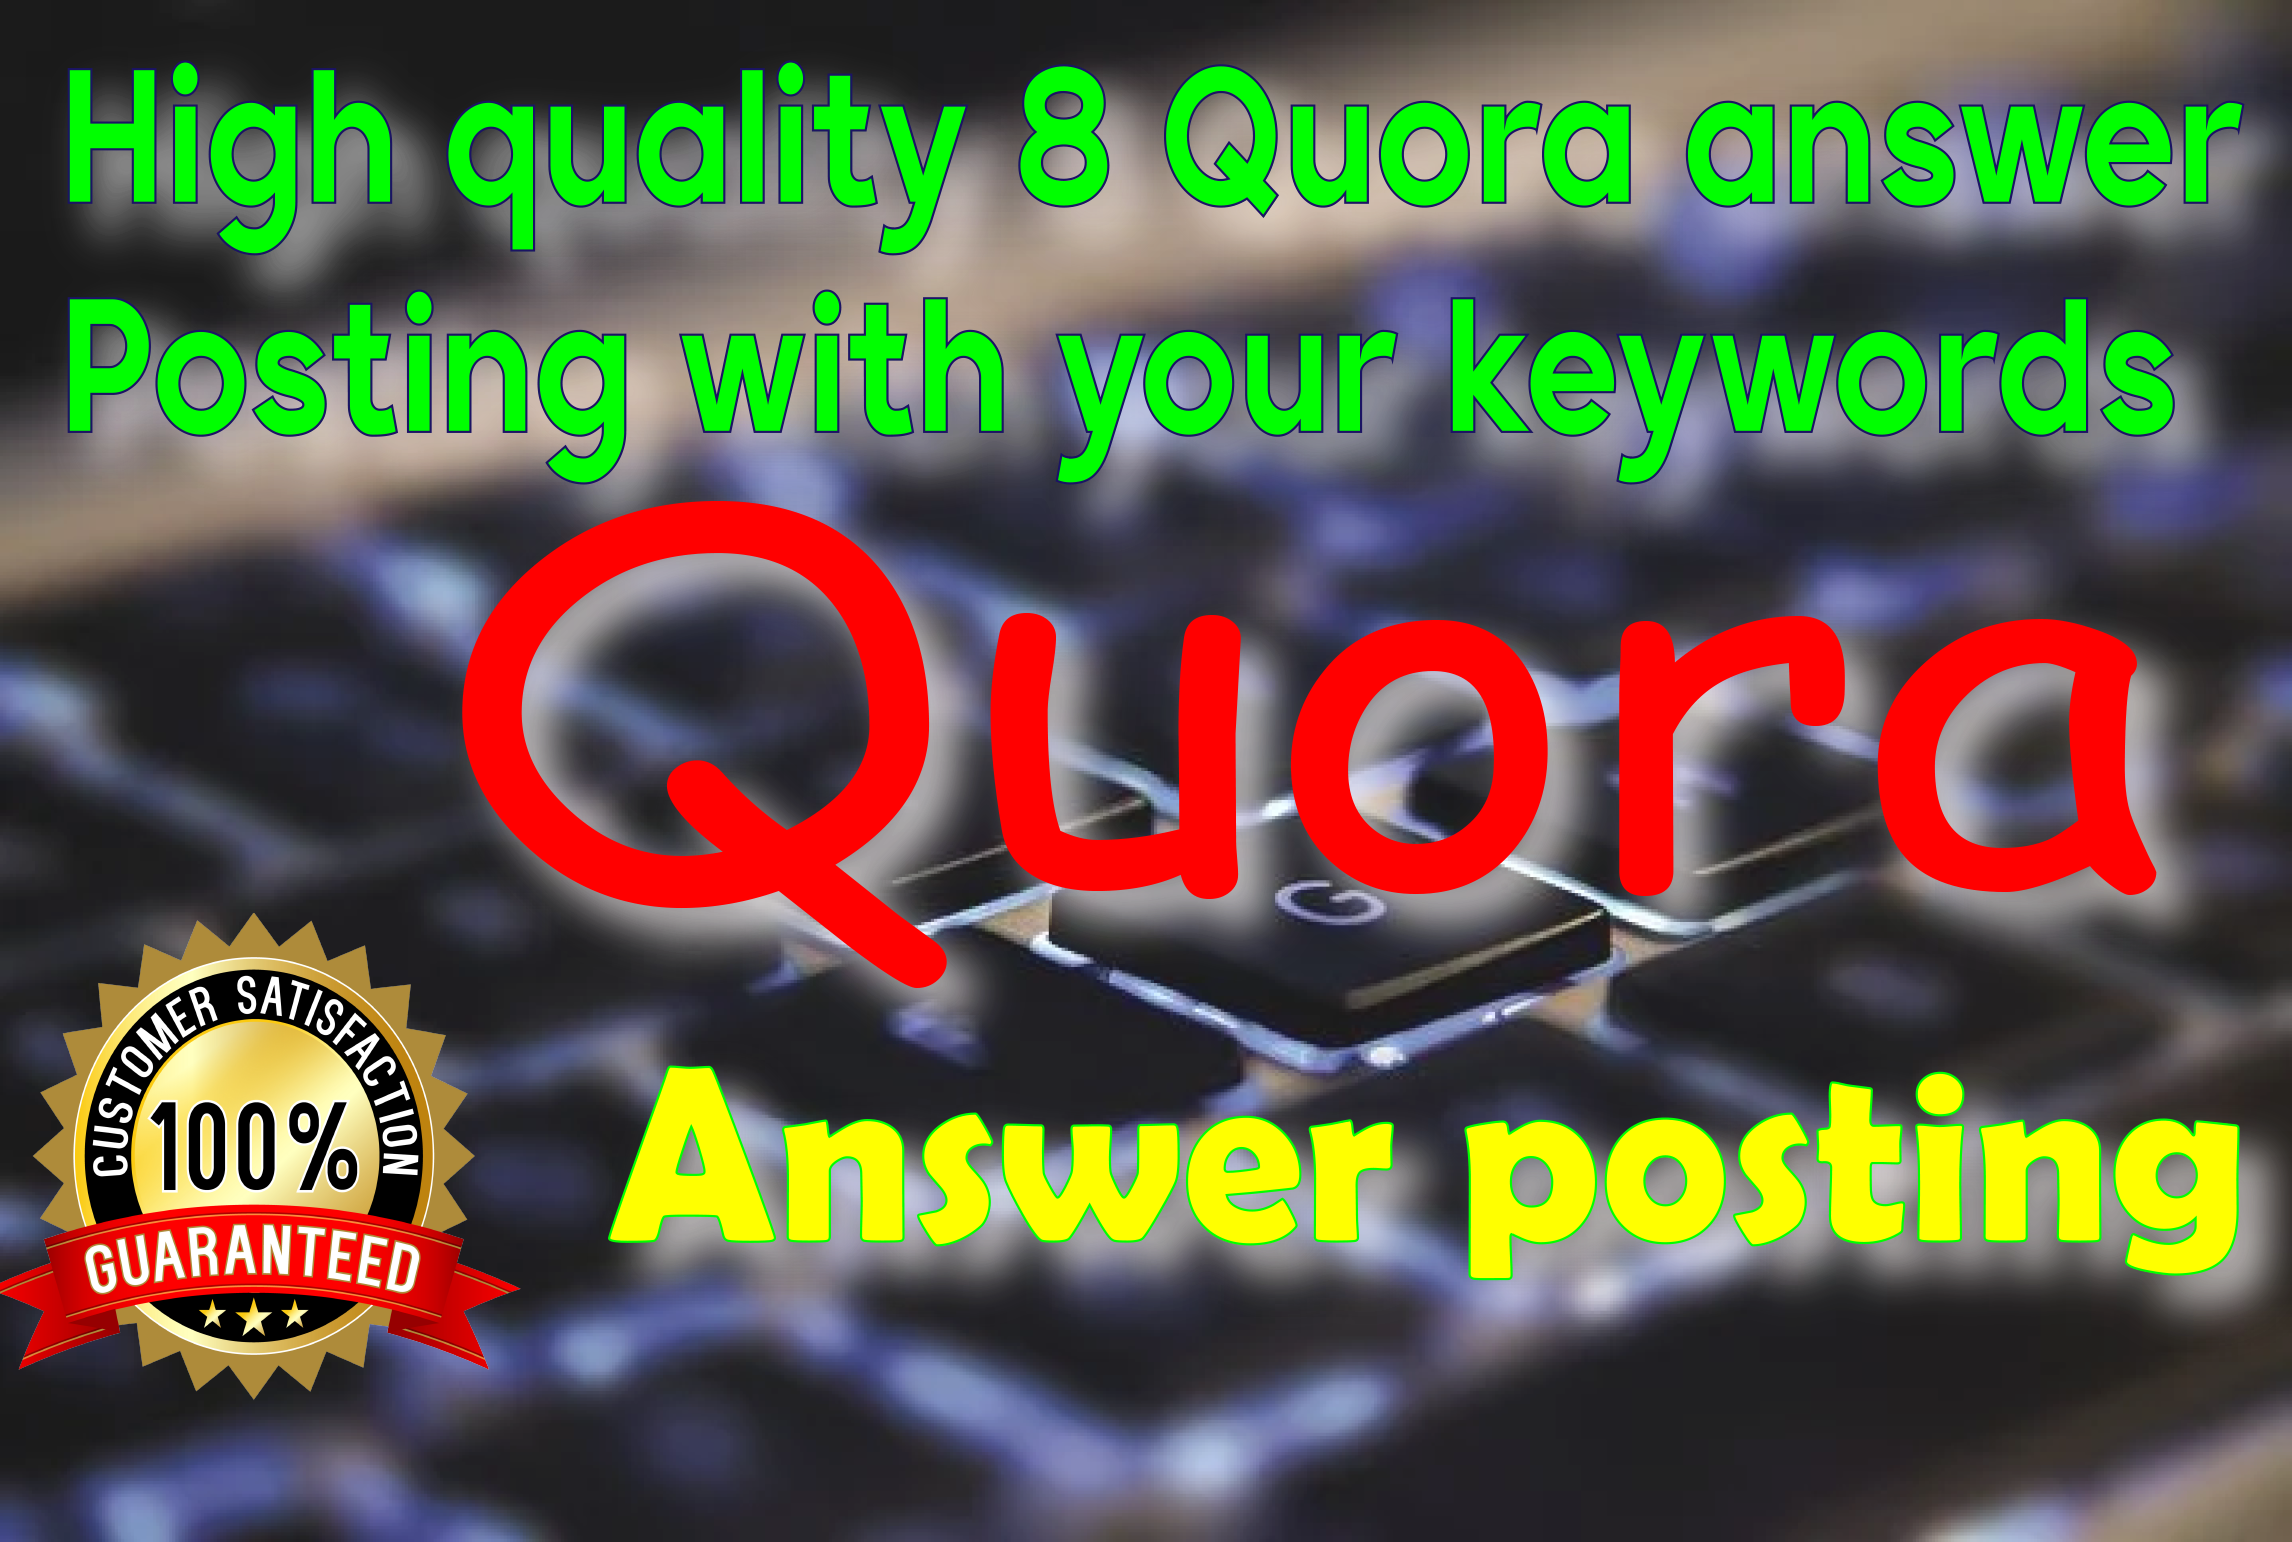 High quality 8 Quora answer to promote your website with backlink